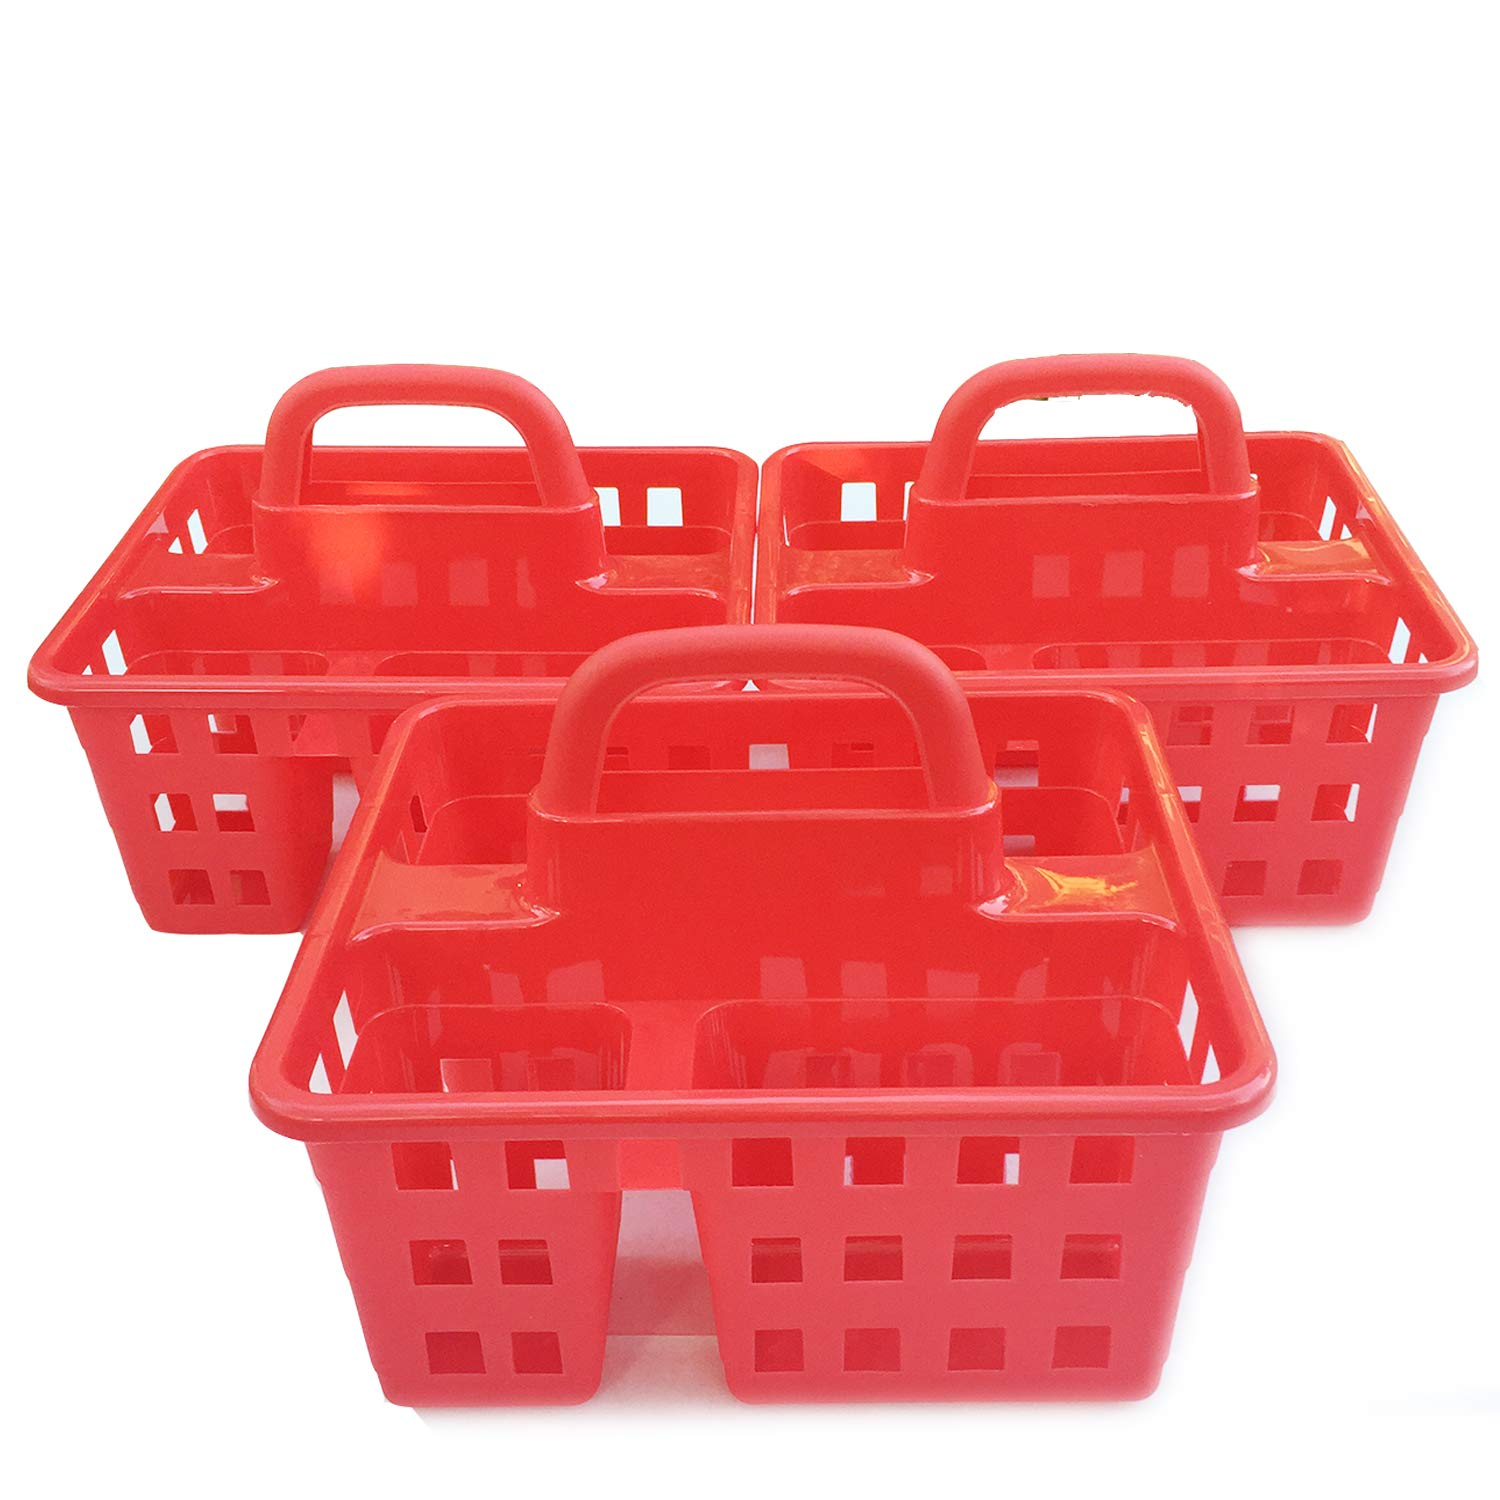 Plastic Caddies with Handle Red 3-Compartment Storage Baskets Tote Containers Cubes Square Slotted Locker Book Toy Organizer Boxes For Kids, Organizing Container in Bulk Set of 3 Pack